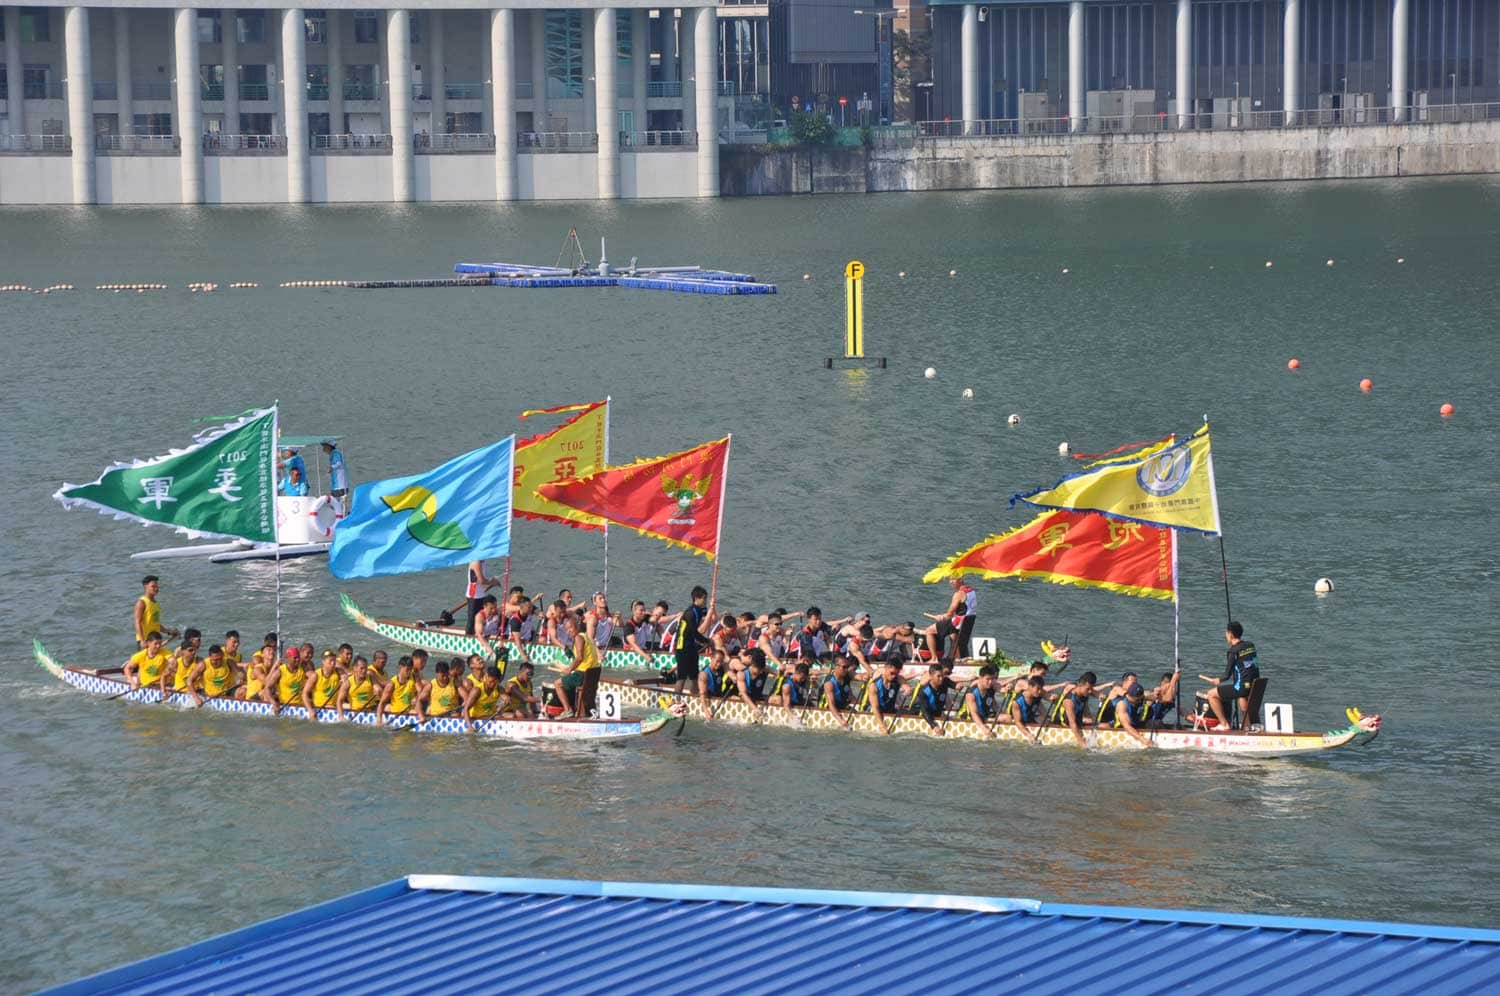 Macau Dragonboat Races dragonboats with flags